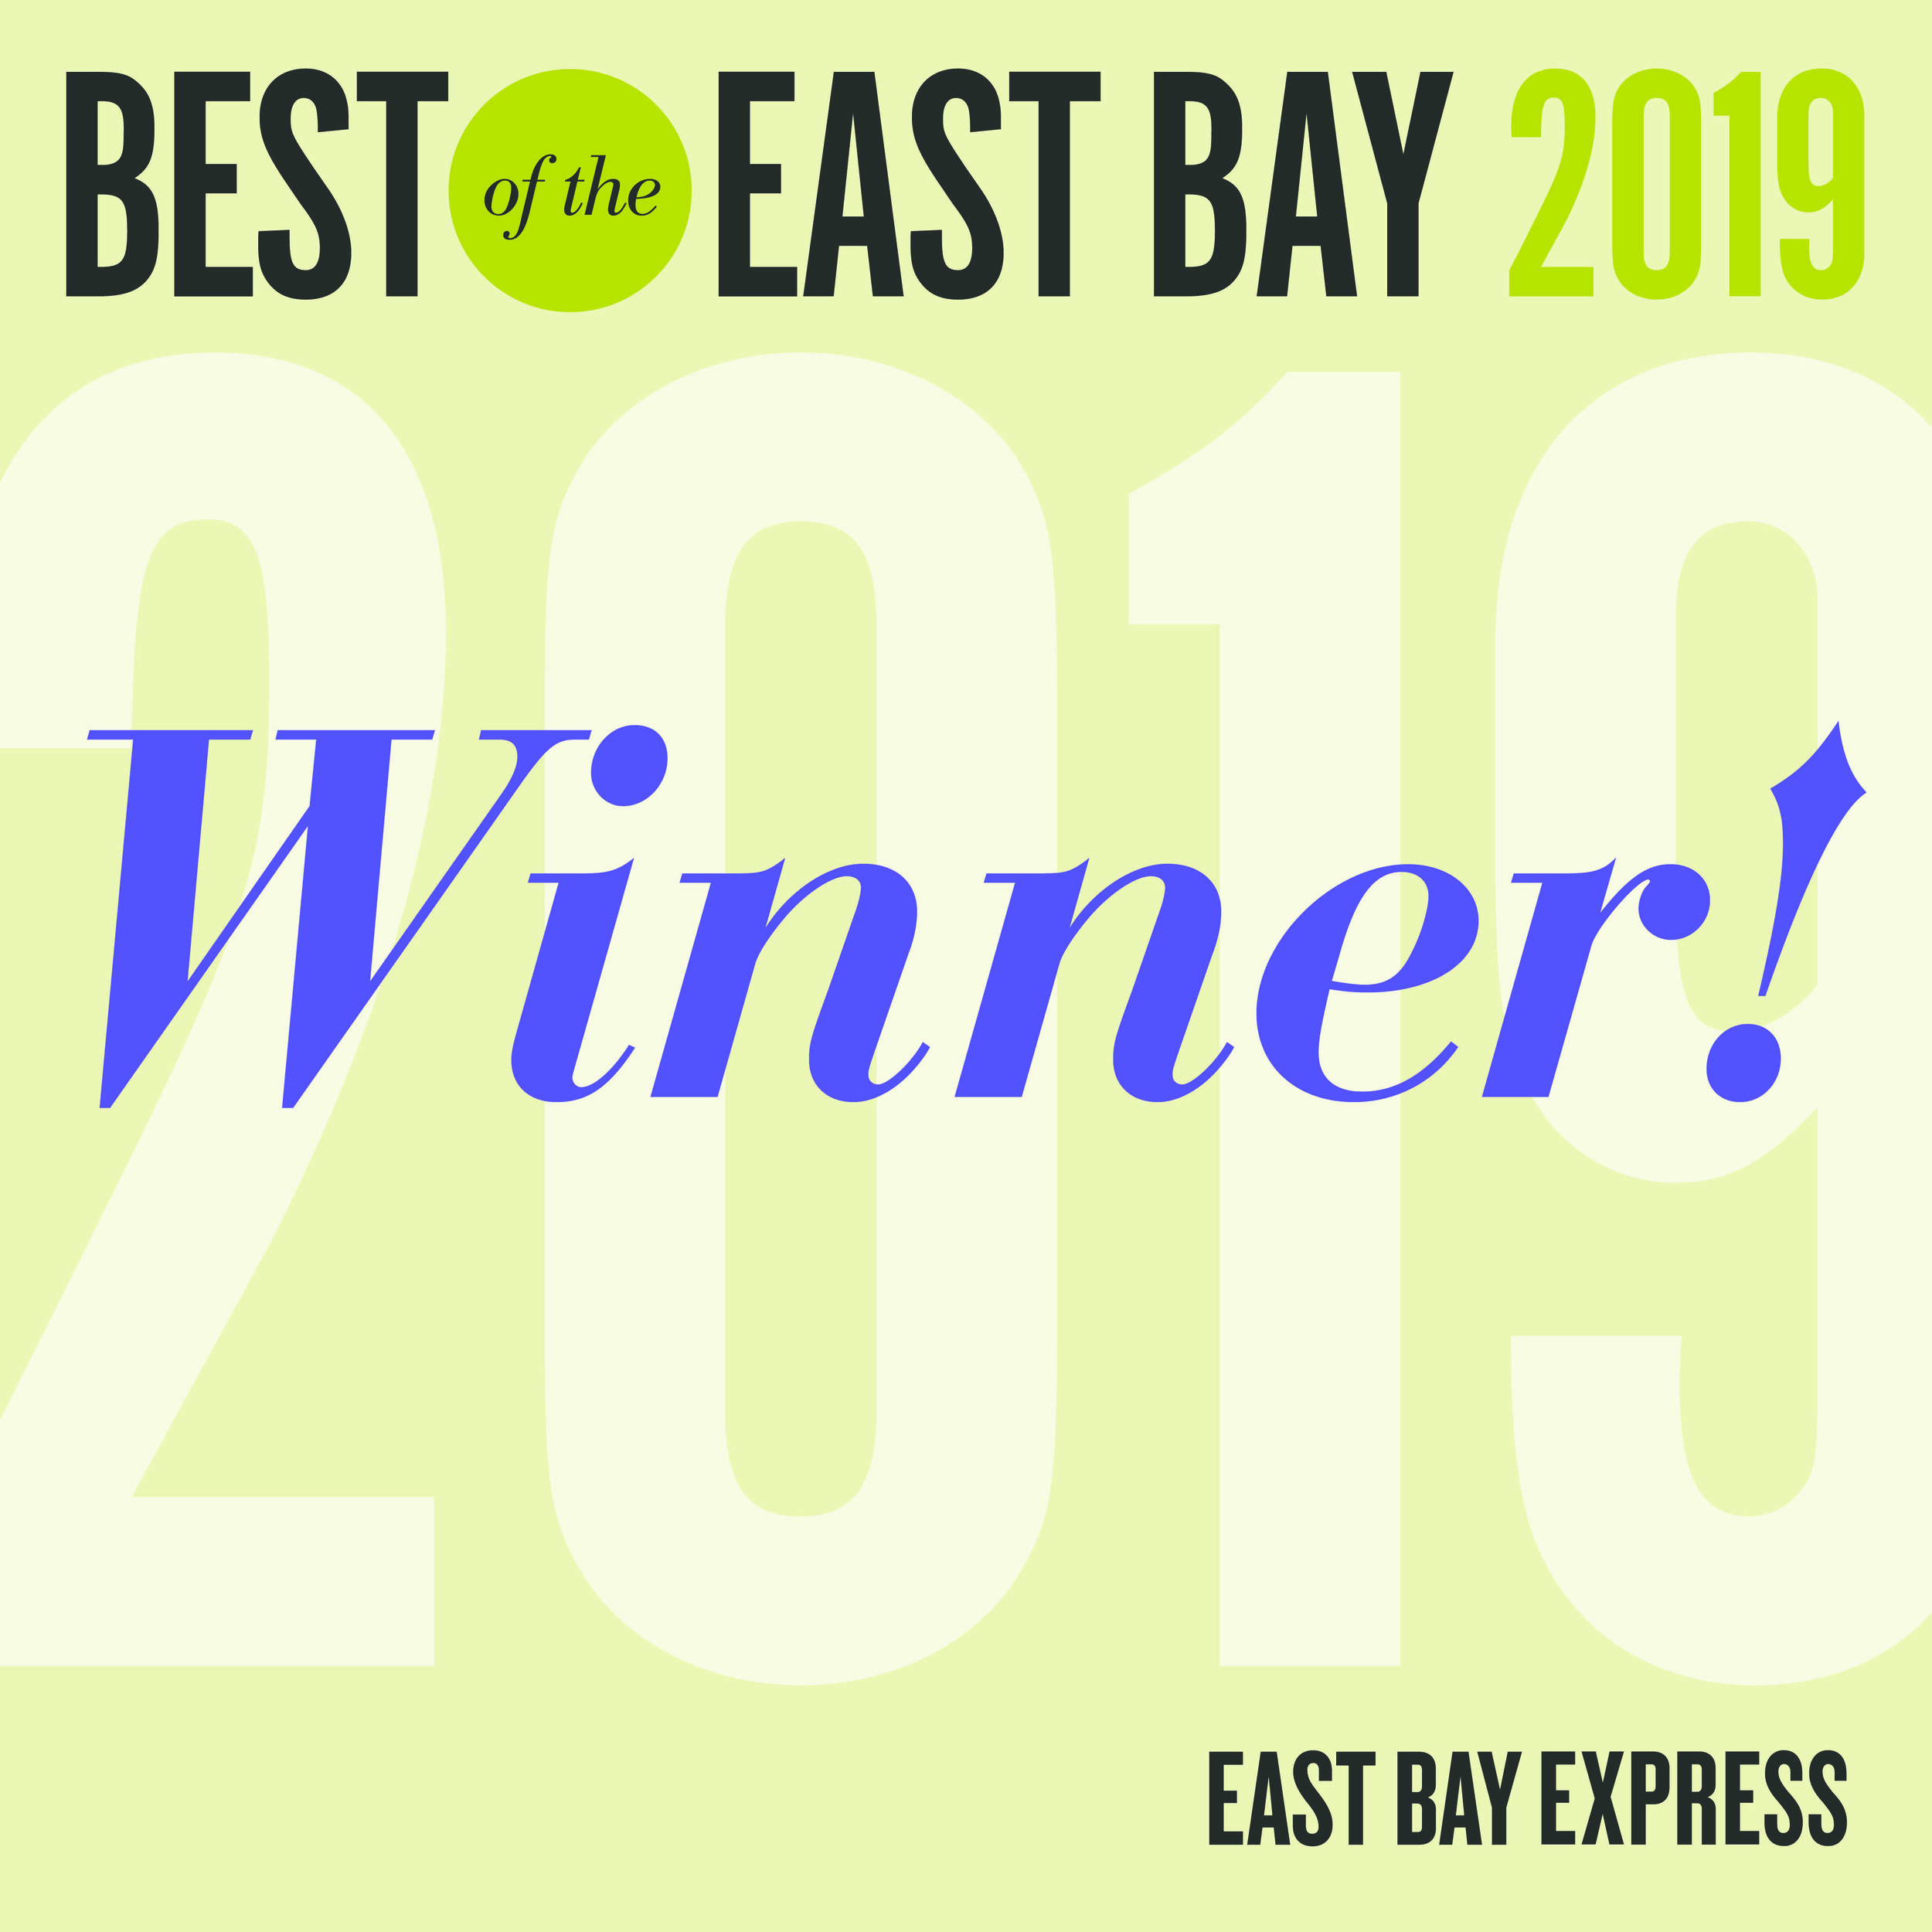 best of the east bay 2019 winner